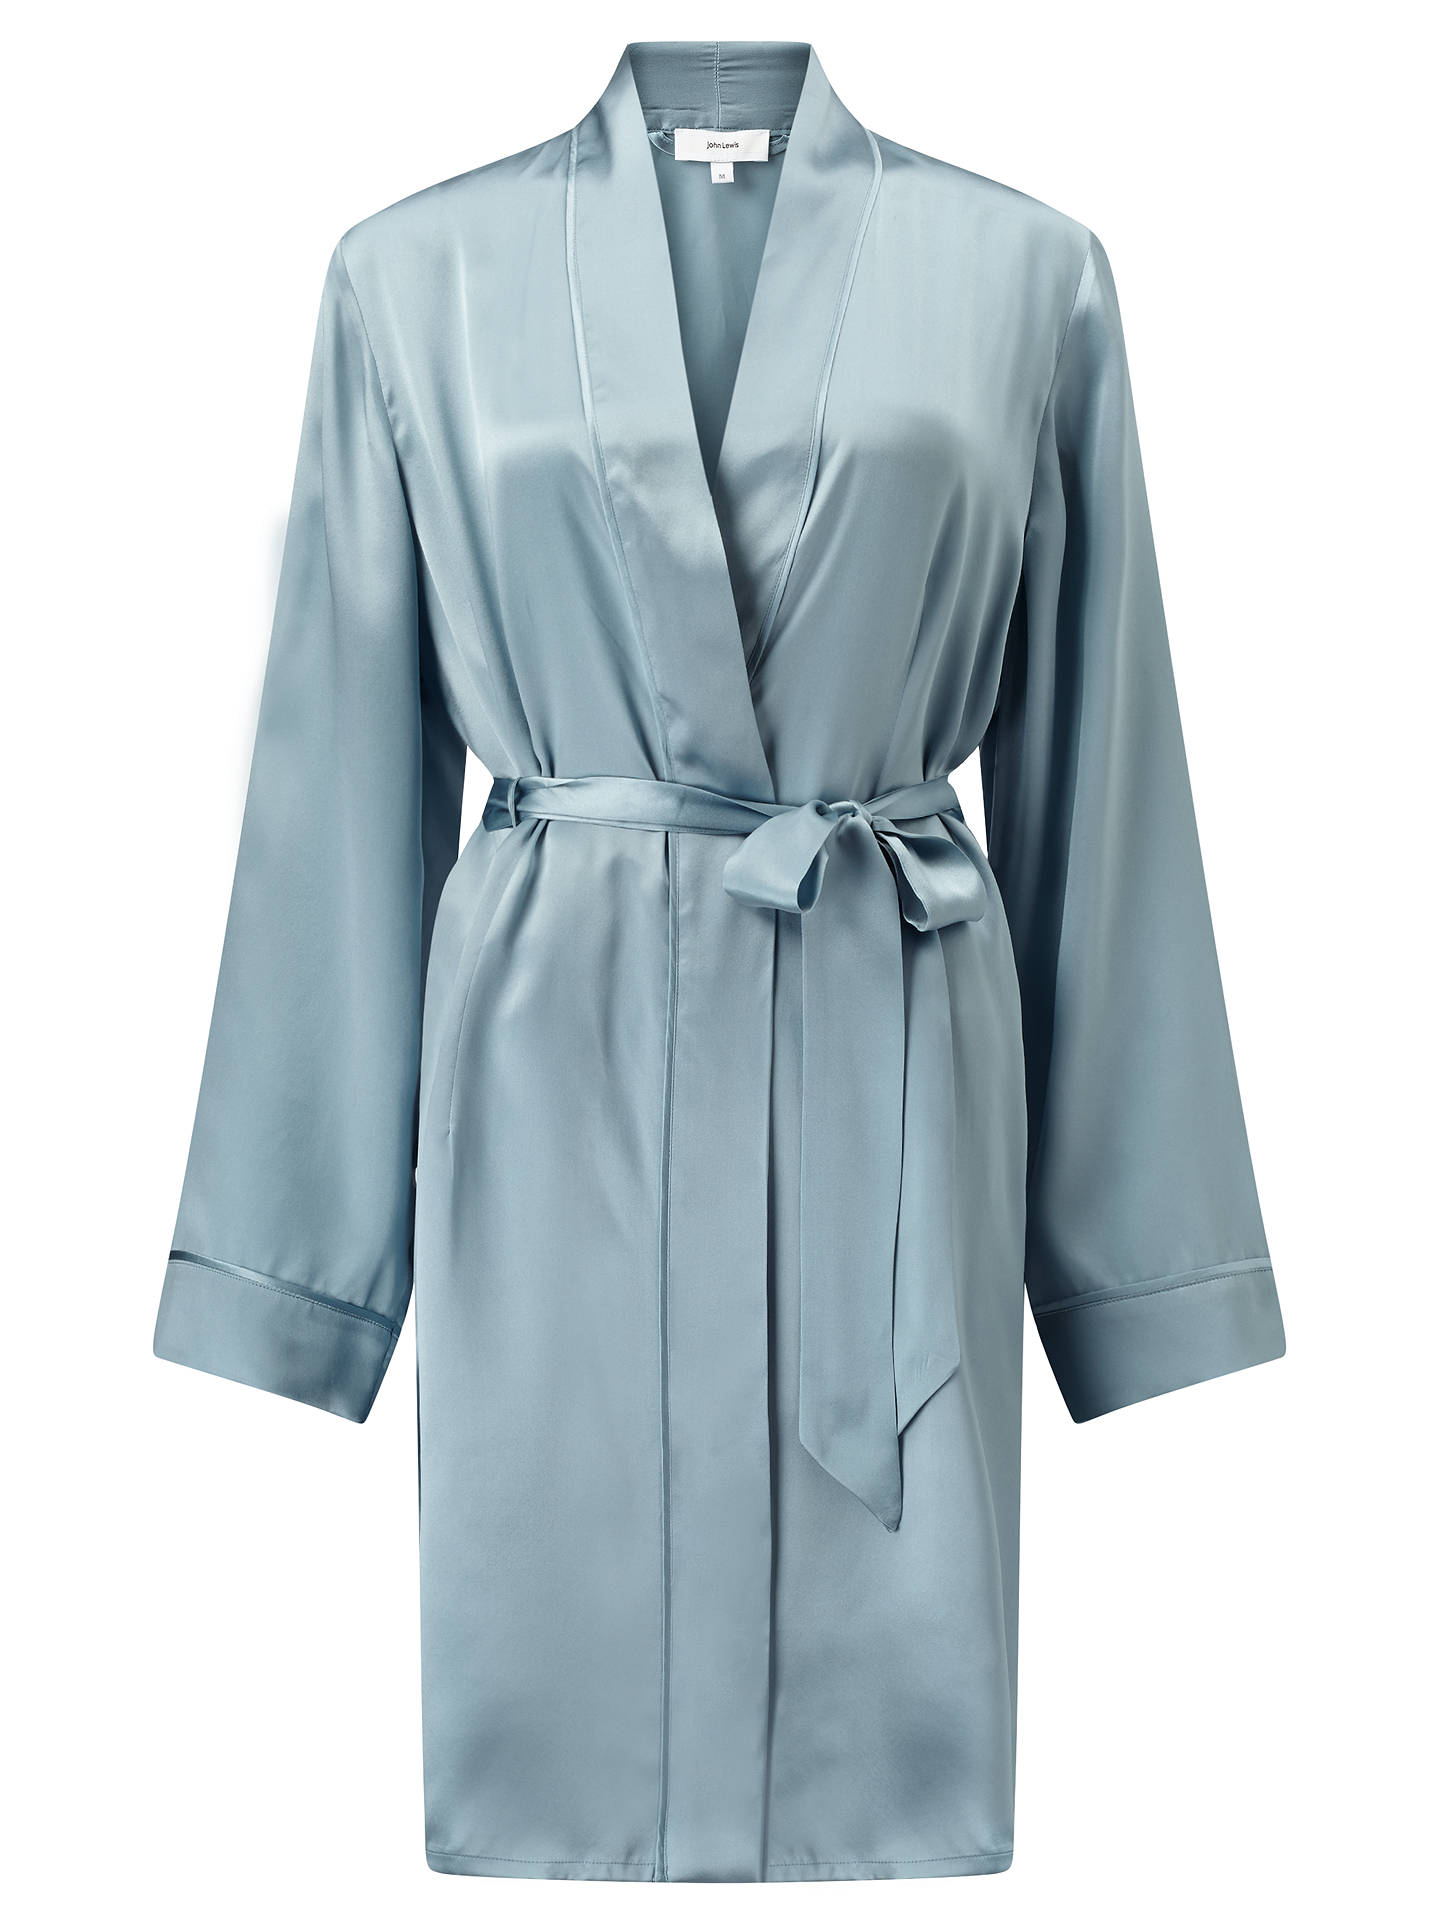 John Lewis Silk Dressing Gown, Aqua at John Lewis & Partners